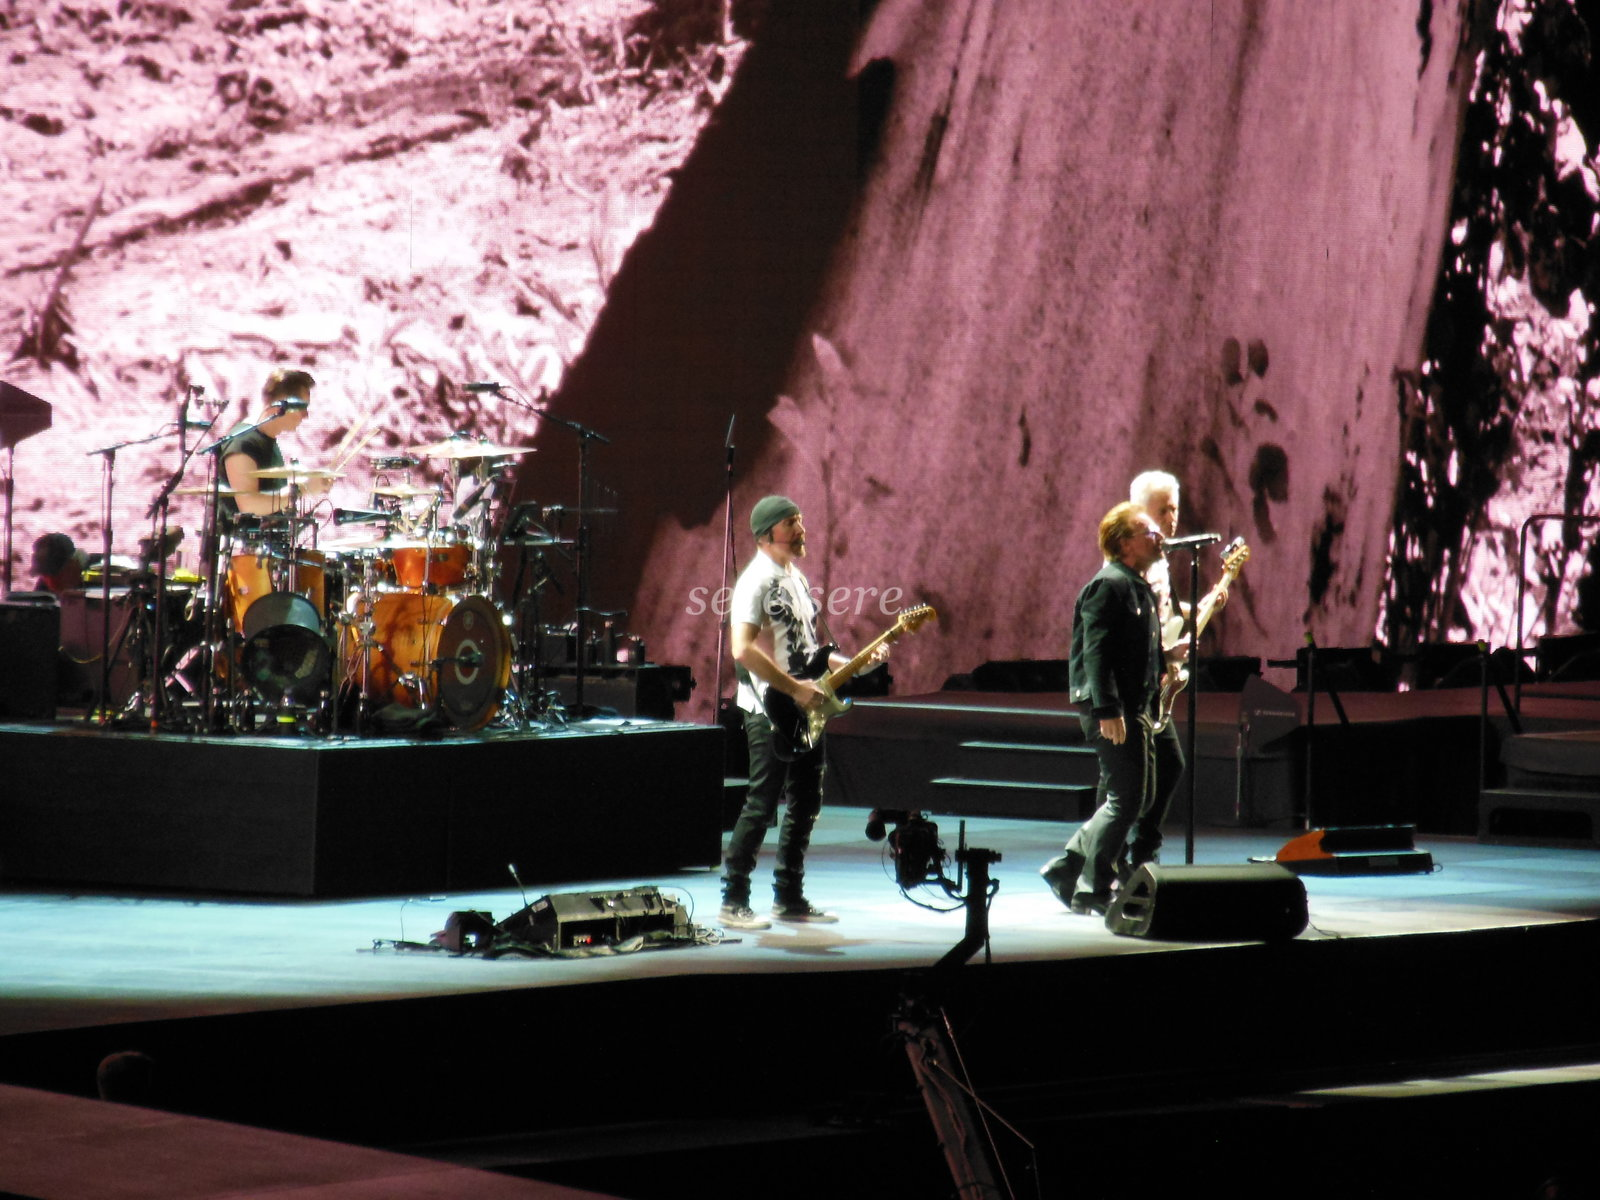 U2 on stage in Rome TJTT2017